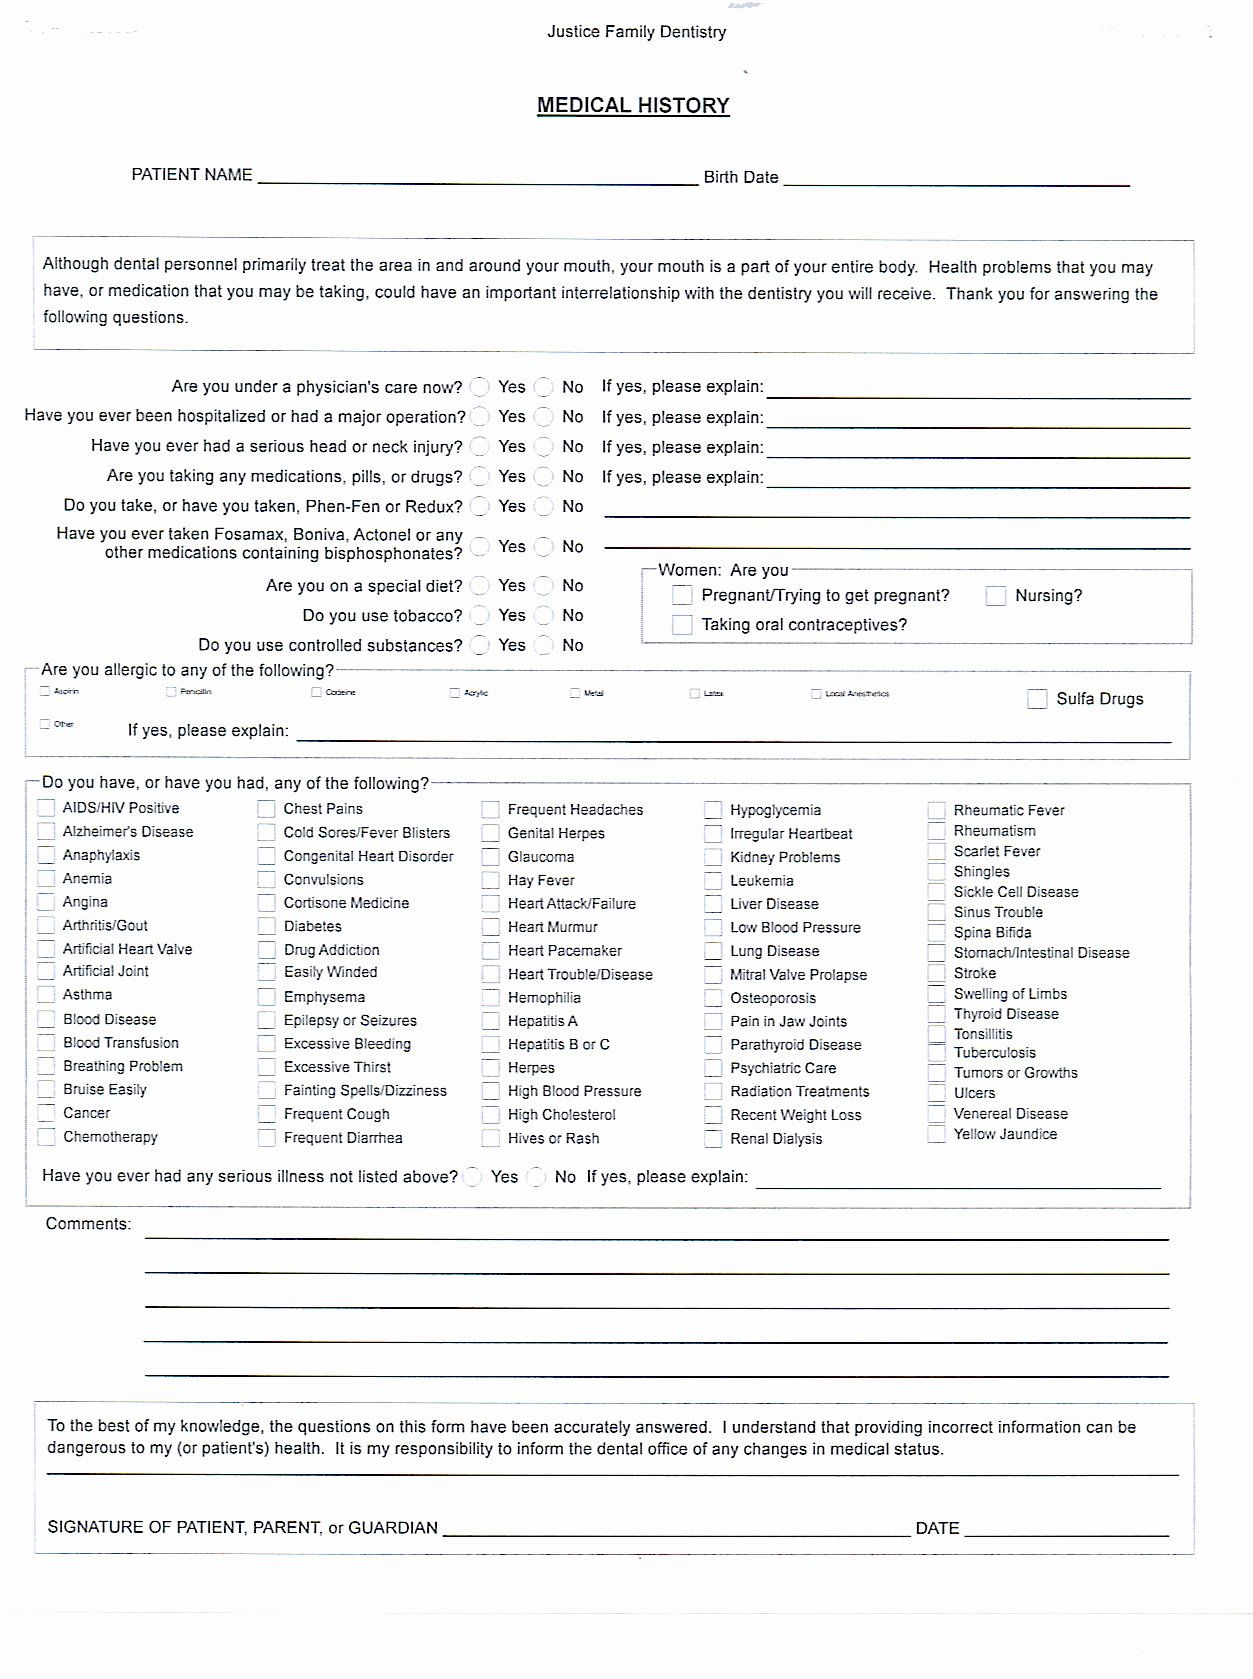 Free Printable Medical forms Luxury Medical History form Template – Medical form Templates